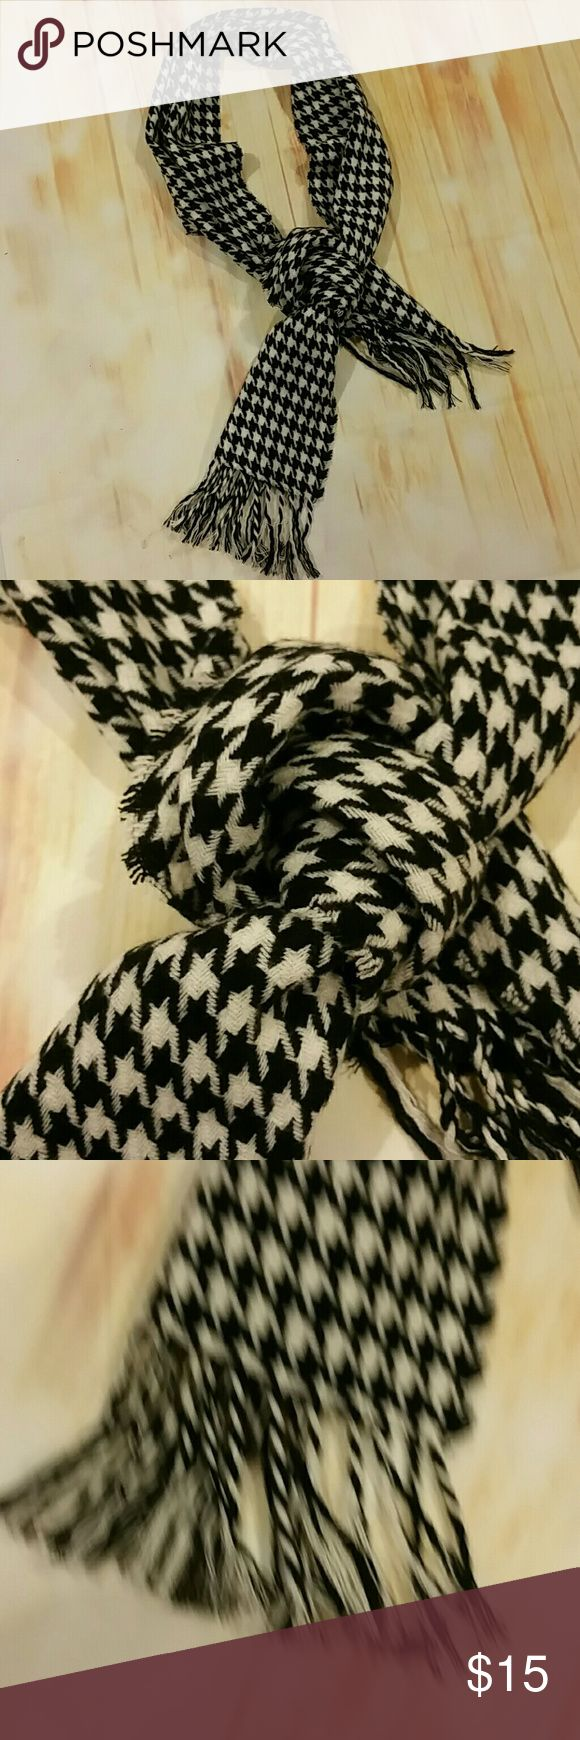 hounds tooth scarf A classic hounds tooth black and white scarf Accessories Scarves & Wraps